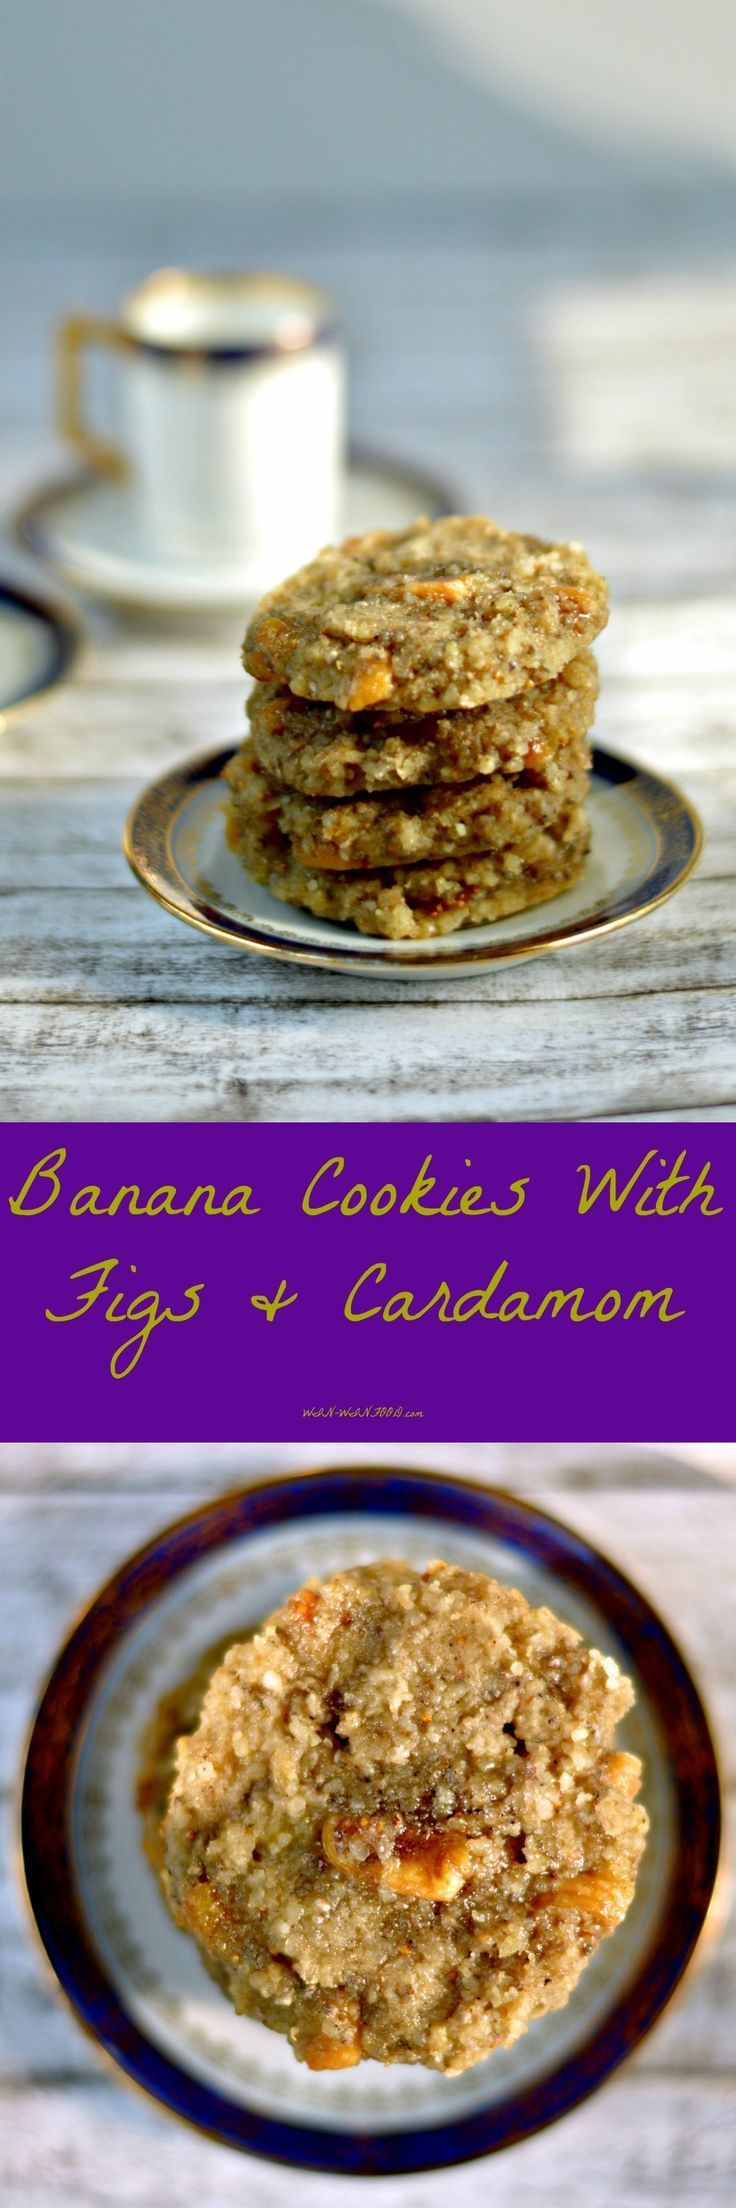 Banana Cookies with Figs and Cardamom (just don't bake for the raw version?)